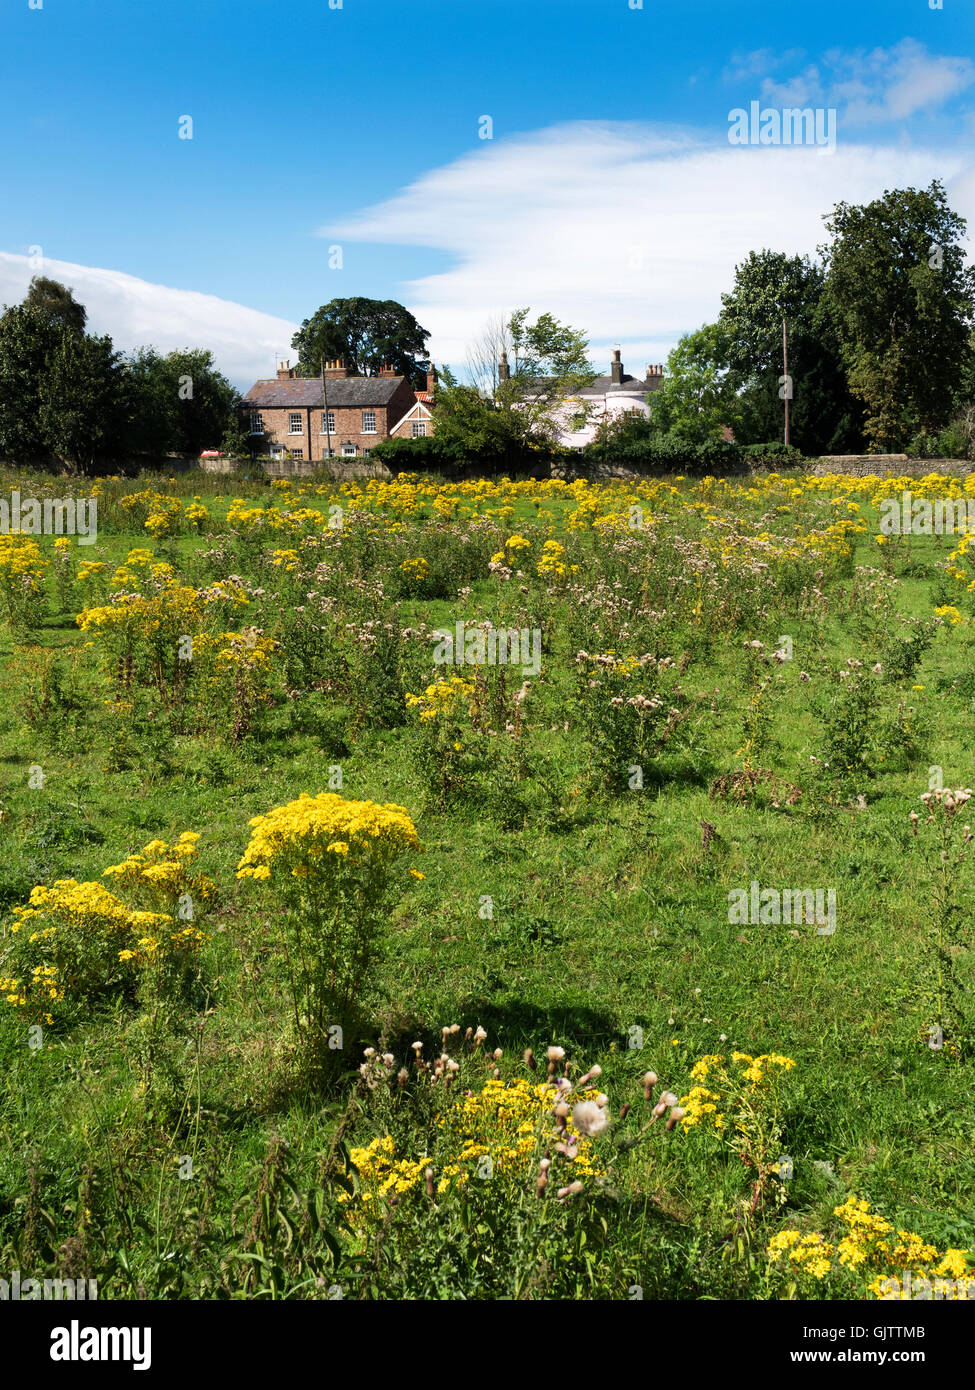 Summer Meadow with Ragwort and Thistles at Bishopton near Ripon North Yorkshire England - Stock Image